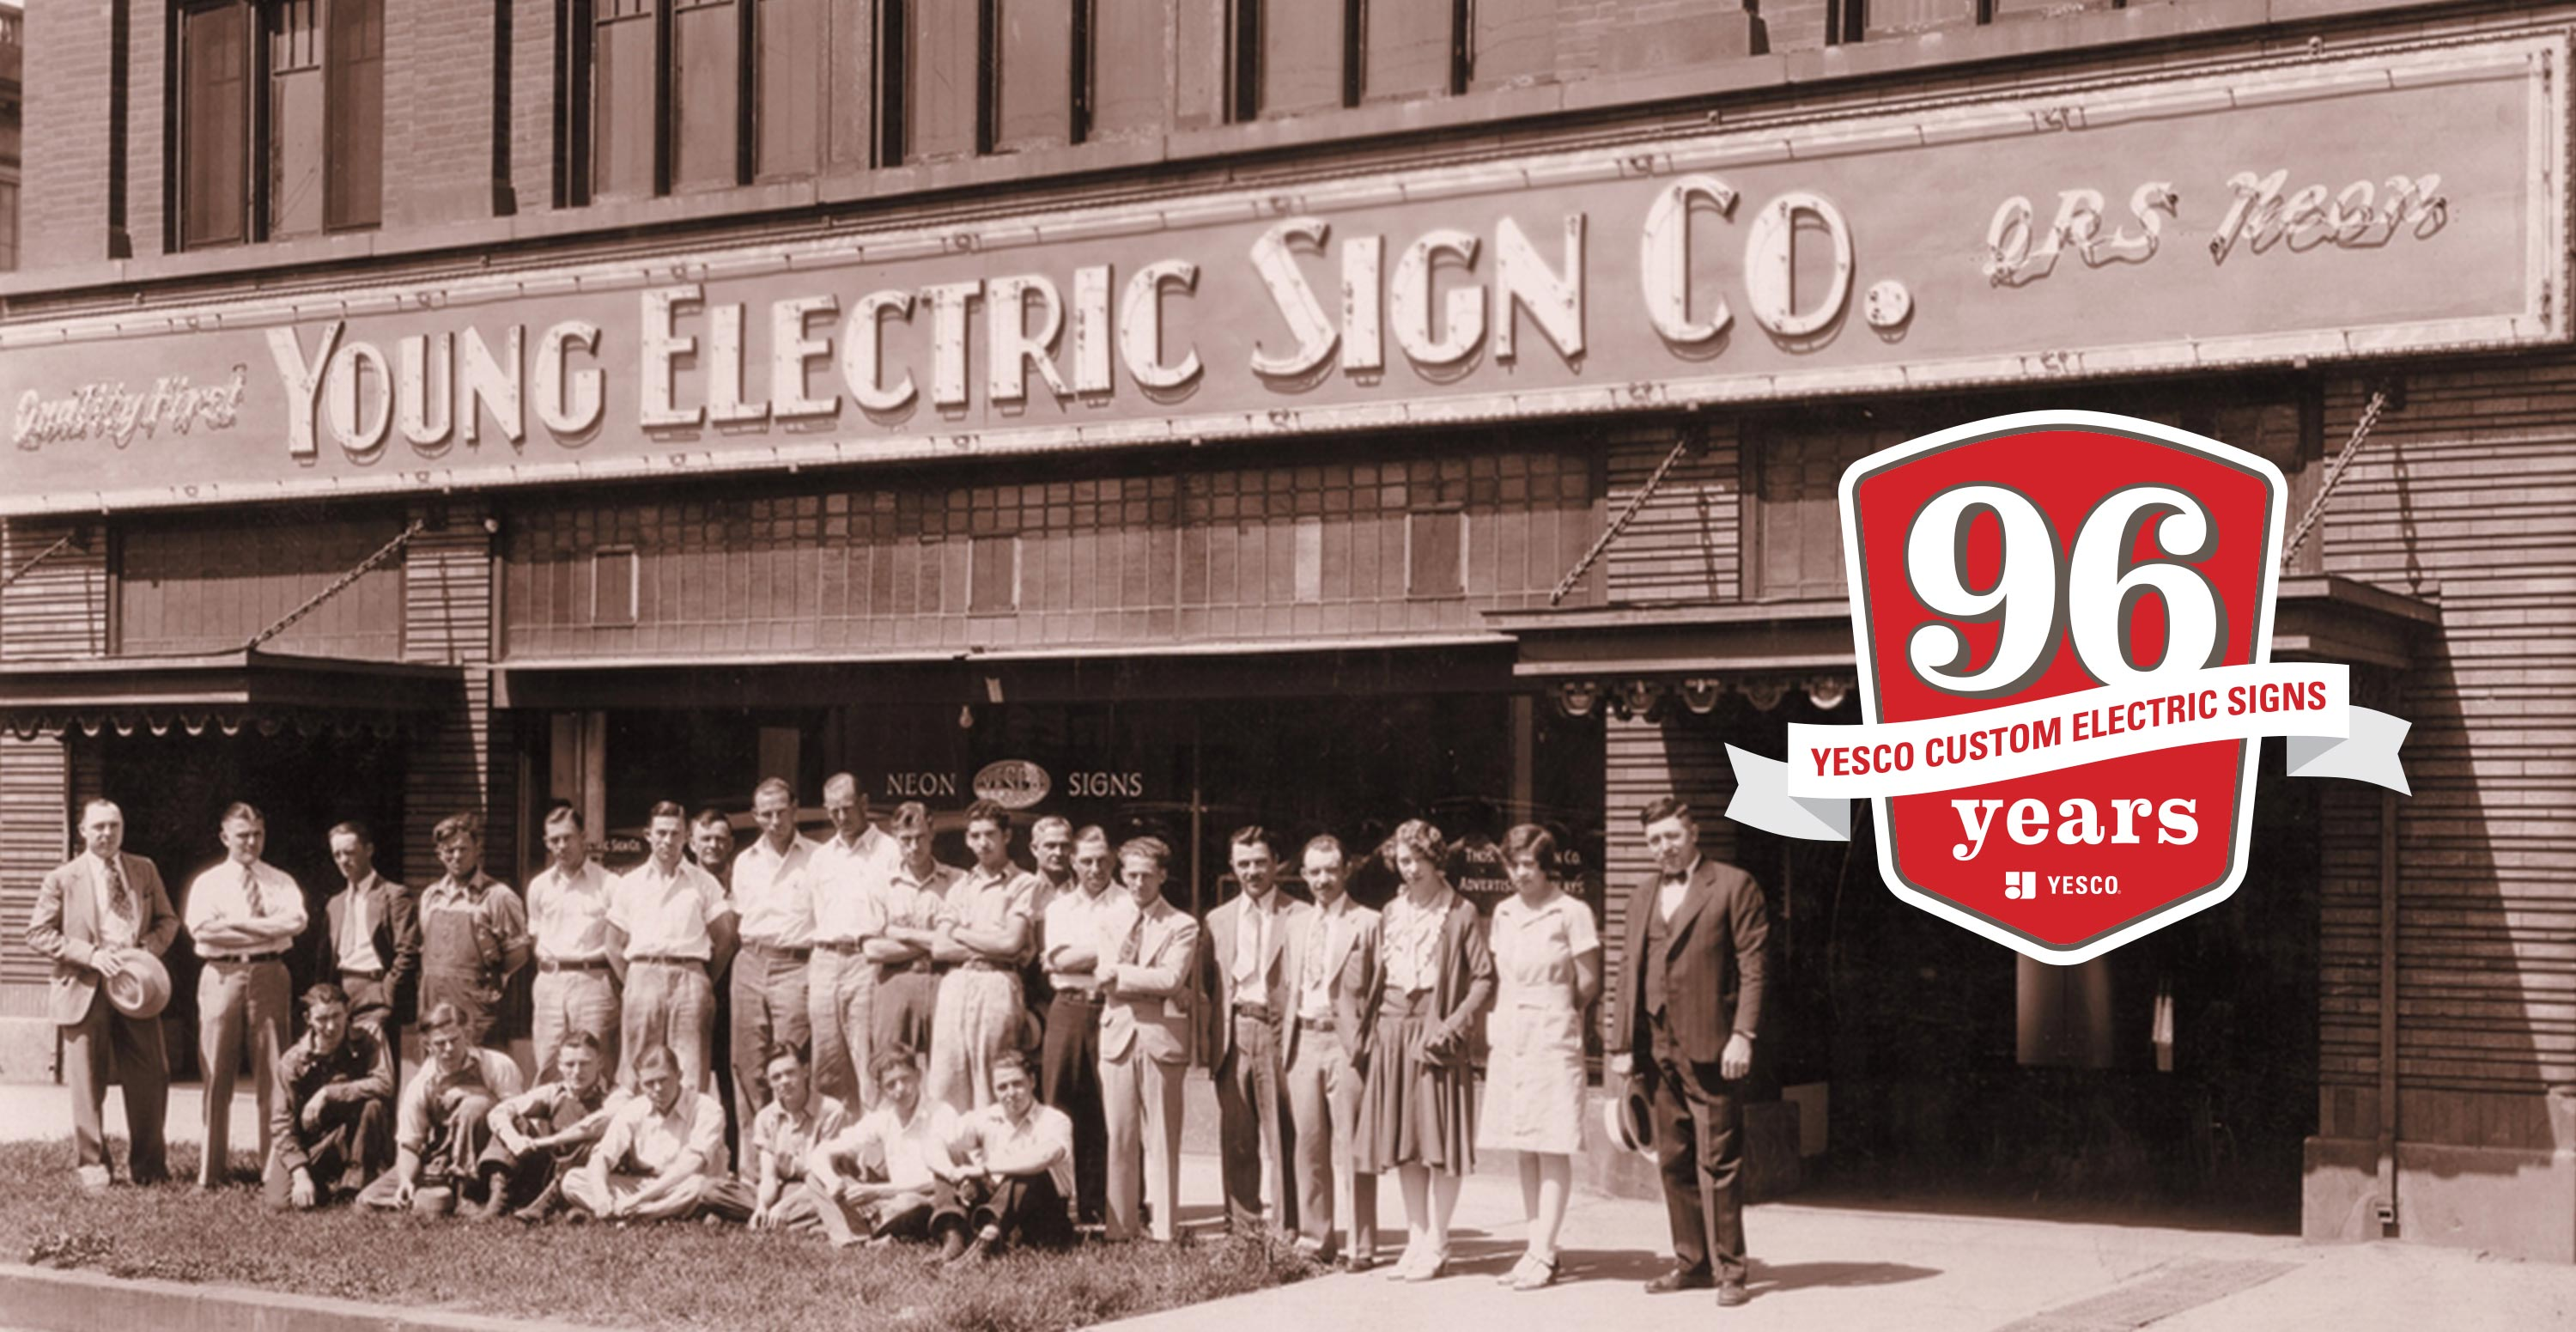 YESCO 96 Years Custom Electric Signs